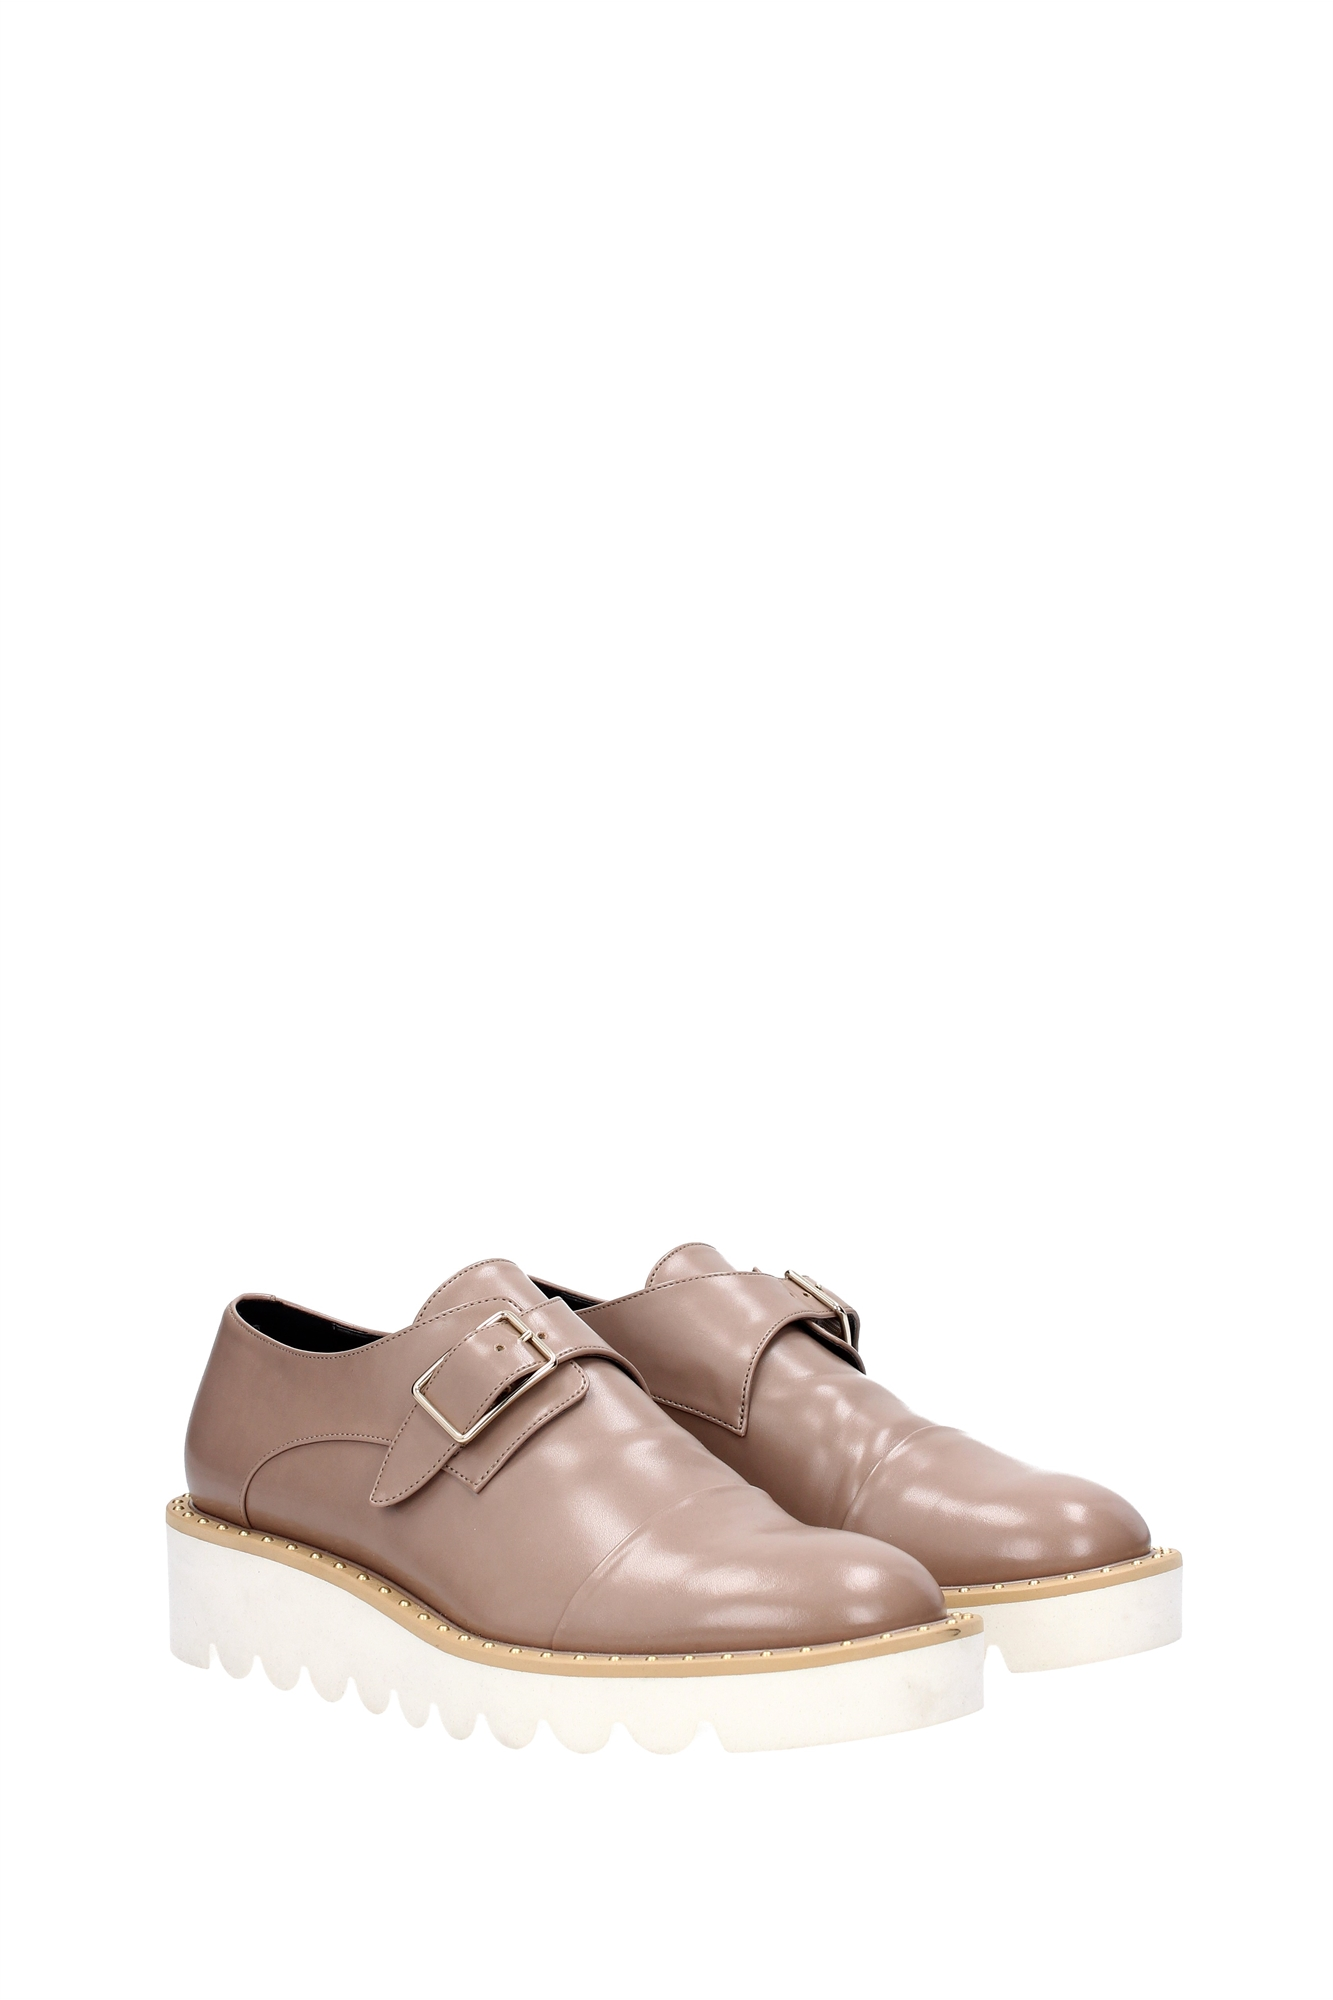 lace up shoes stella mccartney eco leather brown